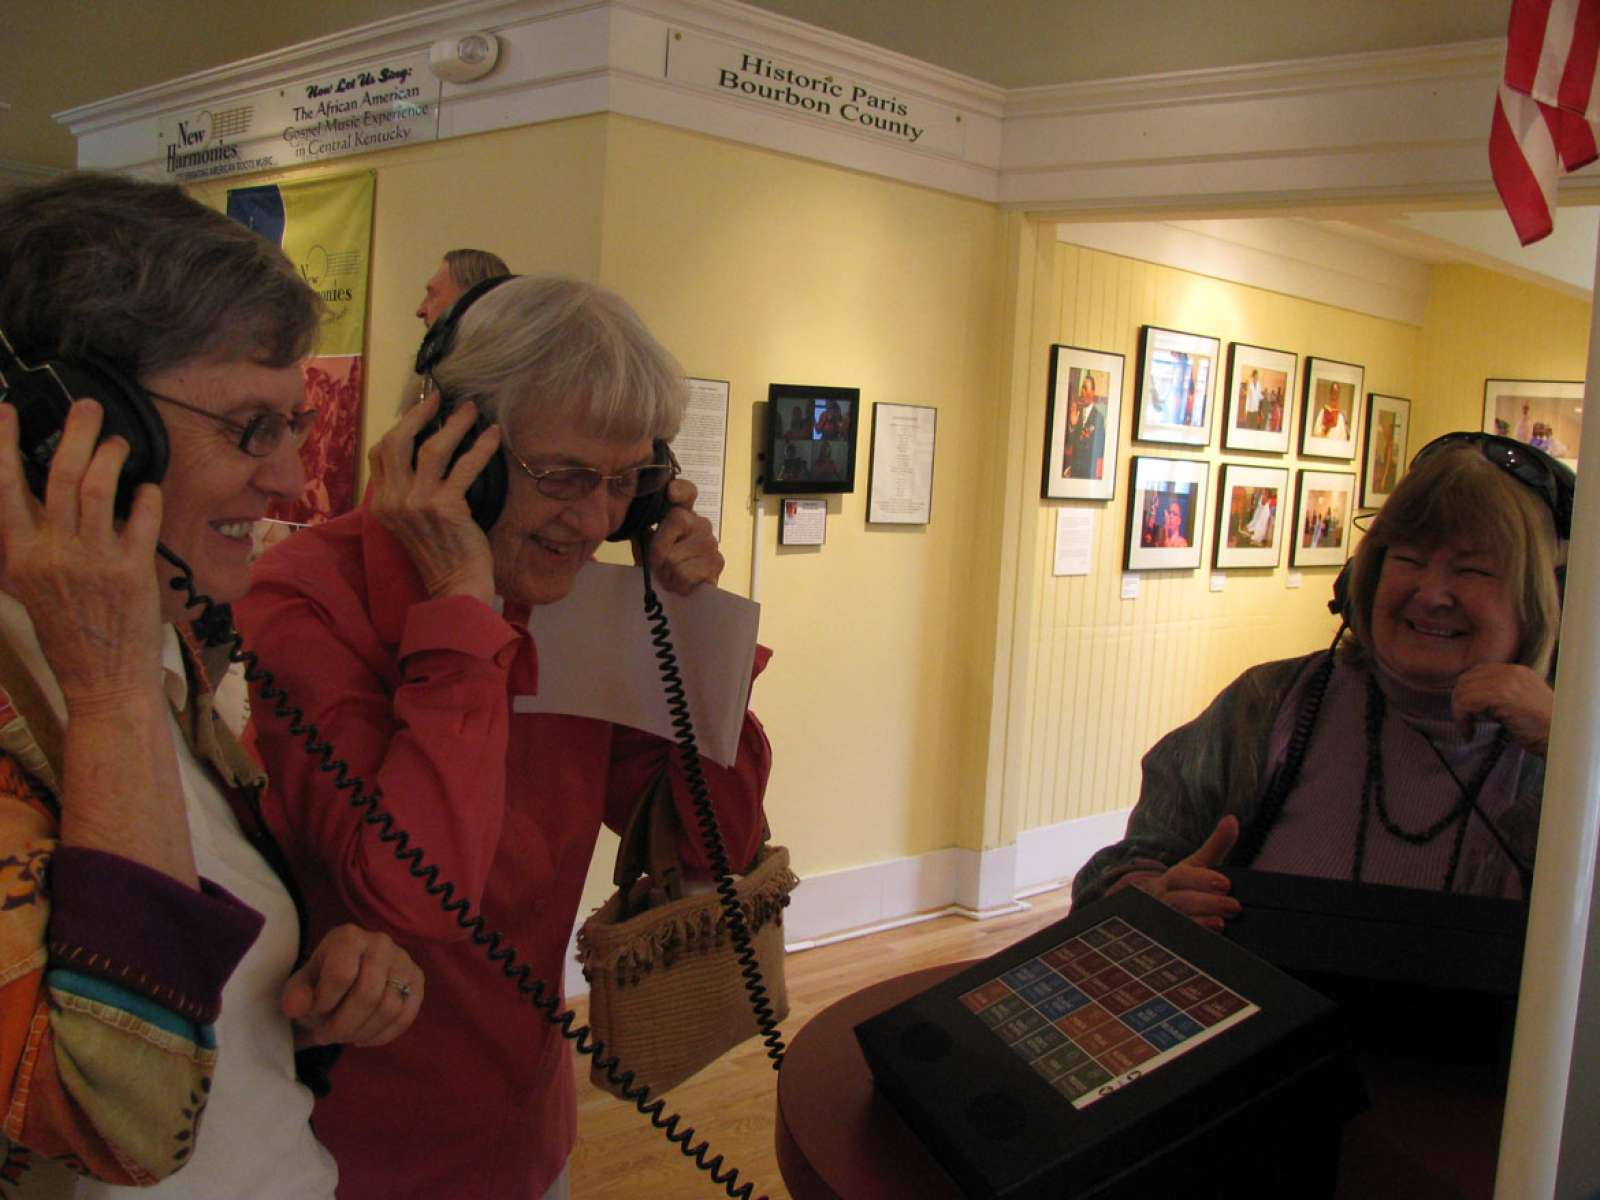 Museum visitors enjoying New_Harmonies Paris, Kentucky 2012